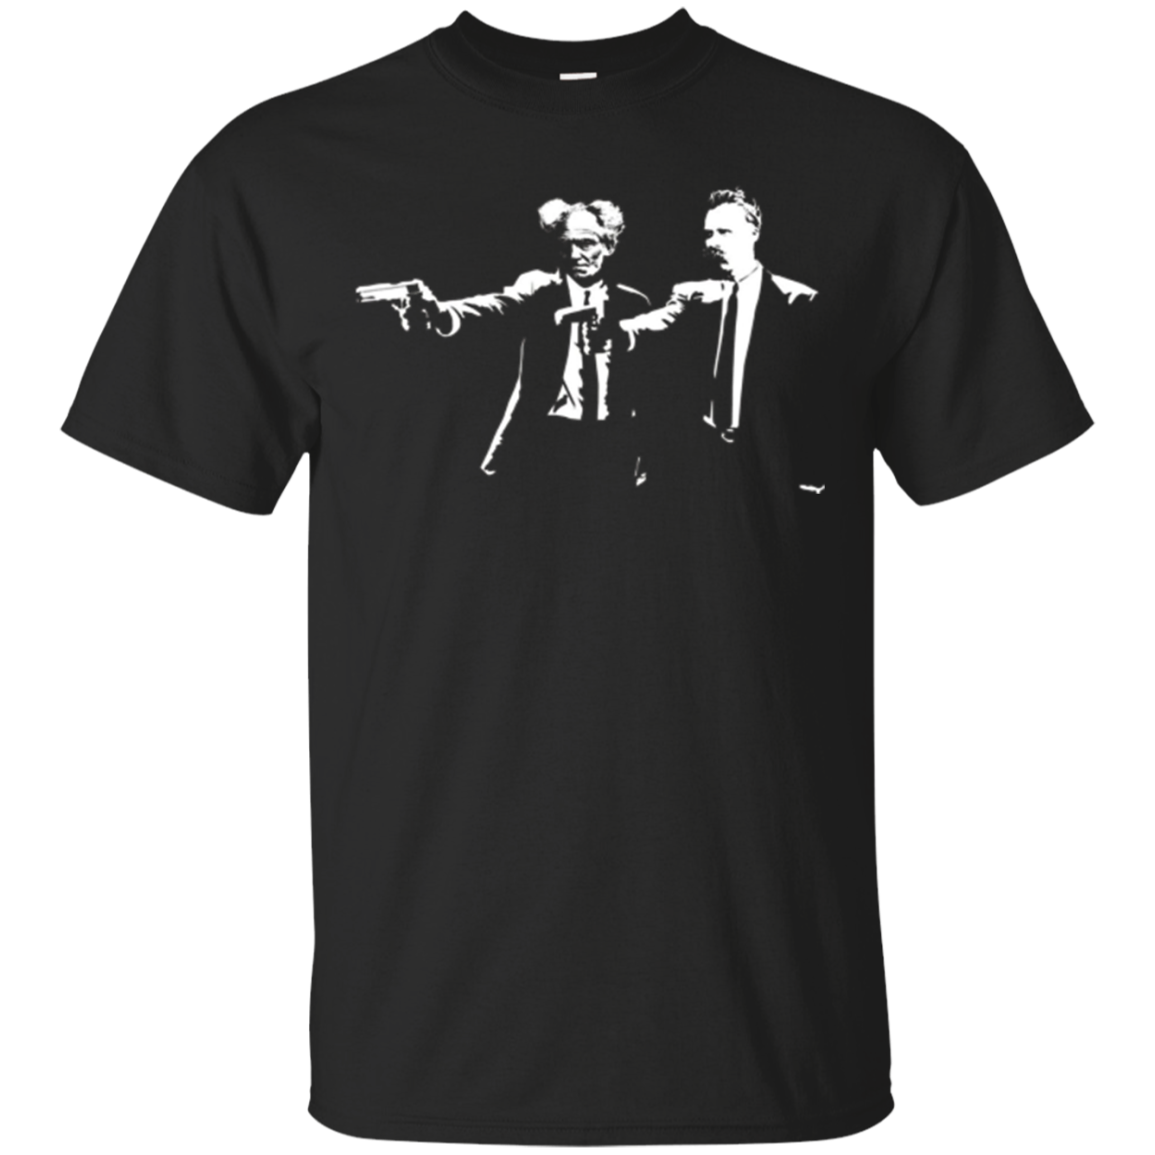 Nietzsche and Schopenhauer Philosopher Exitentialist T Shirt